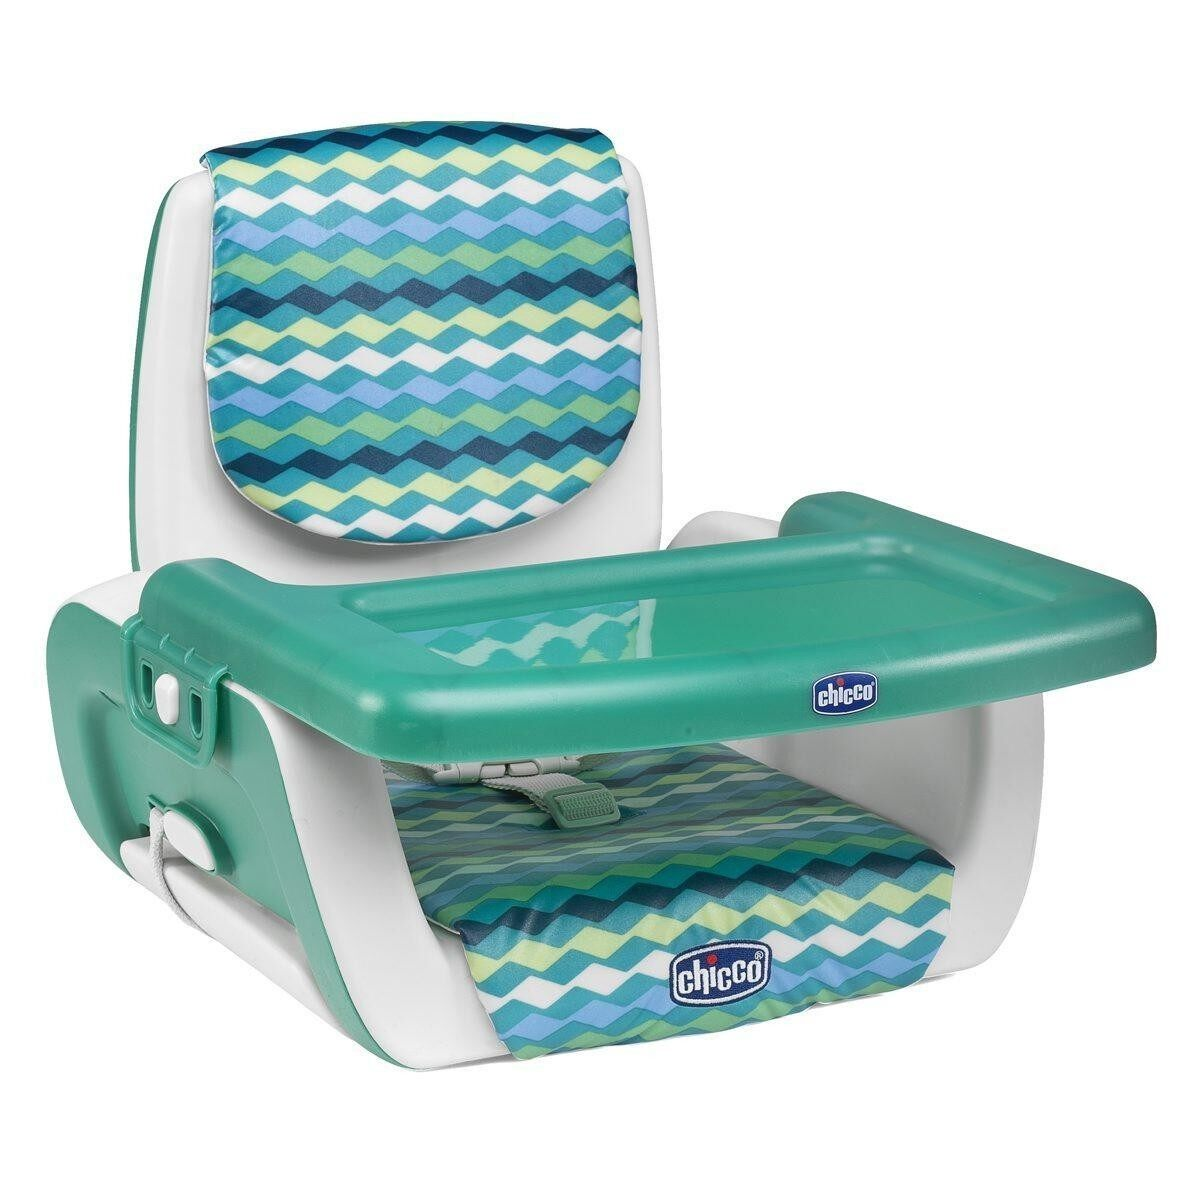 CHICCO-MODE BOOSTER SEAT 6-36 months, ( 2016 UK edition)